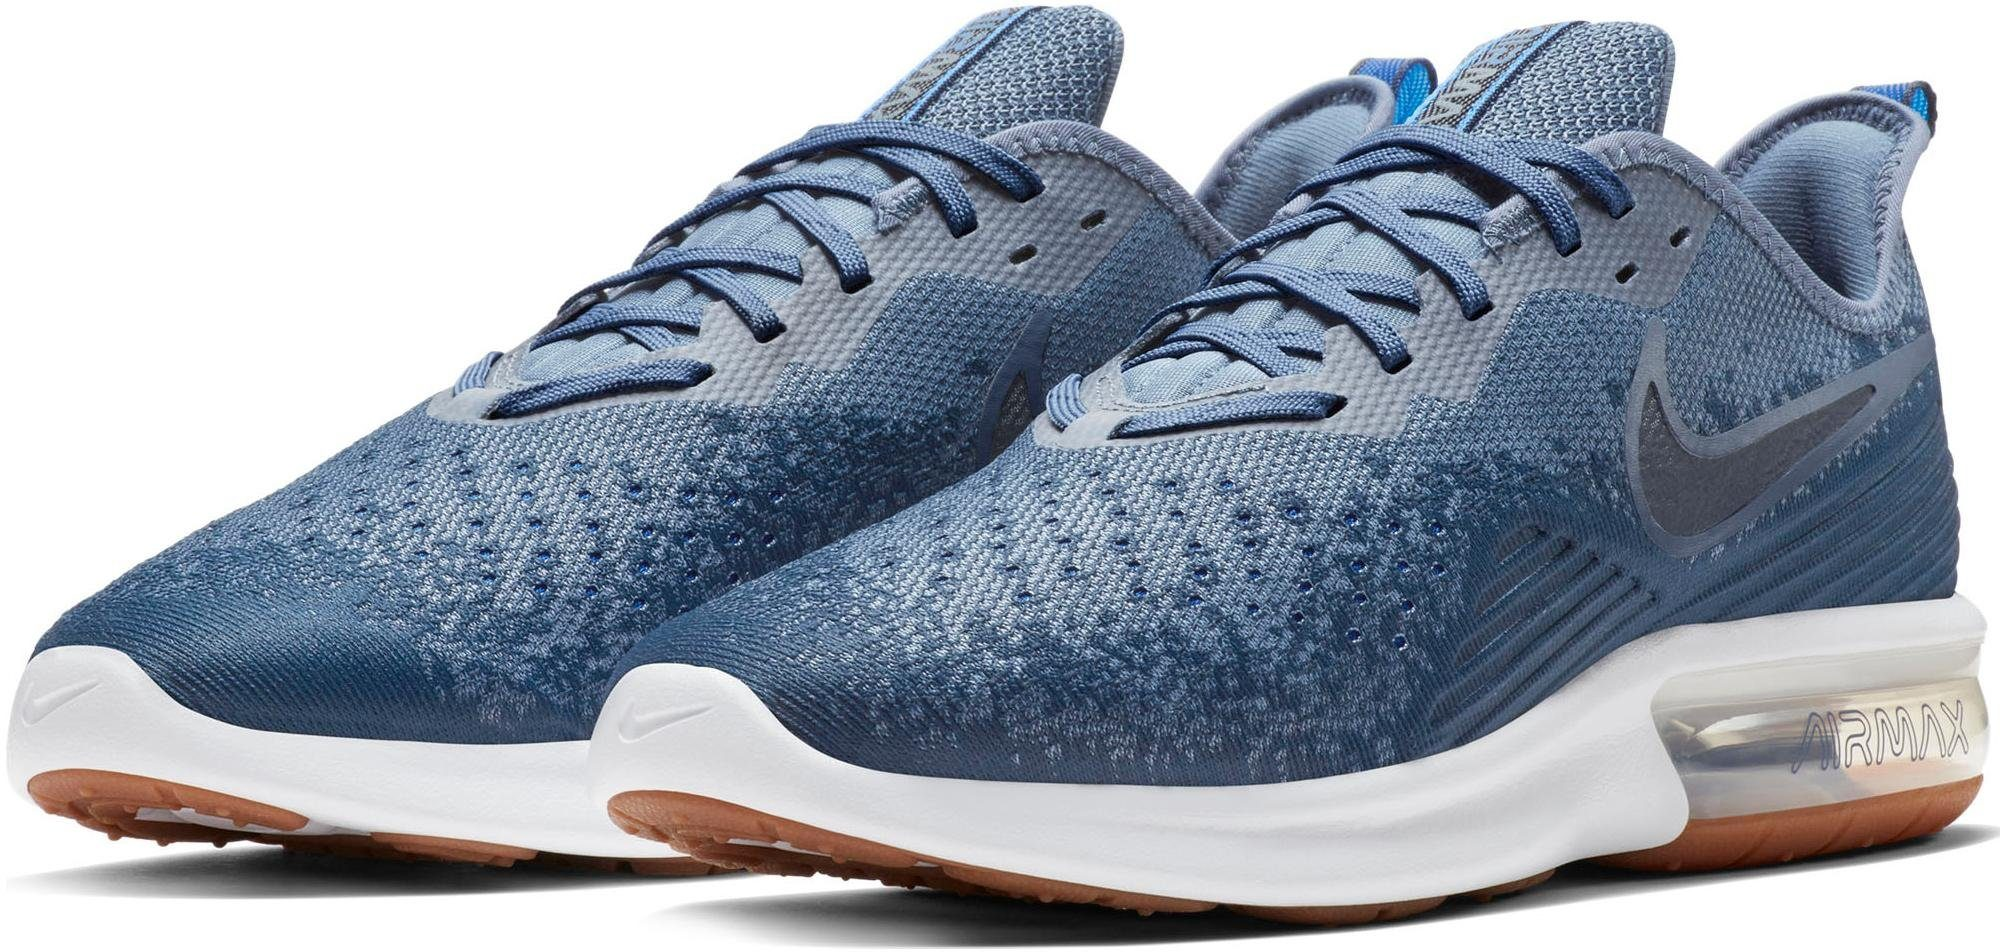 Nike 4« Max Sequent KaufenOtto »air Sportswear Sneaker vYbgf76y